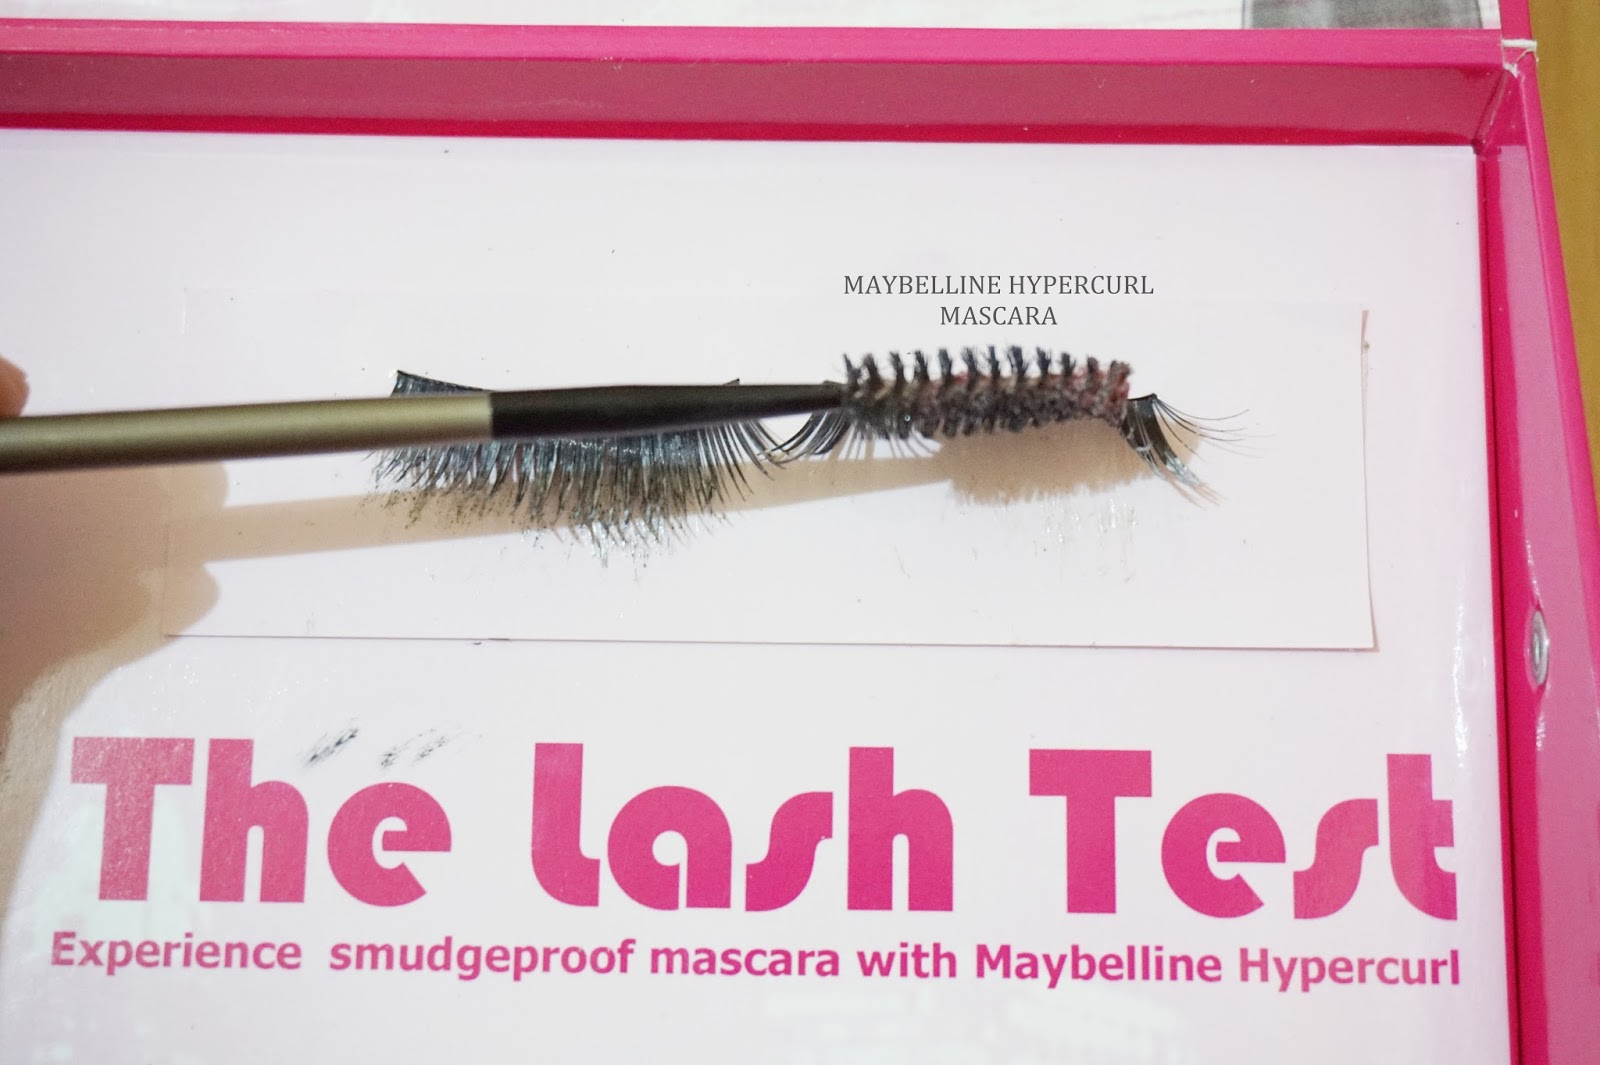 maybelline hypercurl mascara does not smudge at all